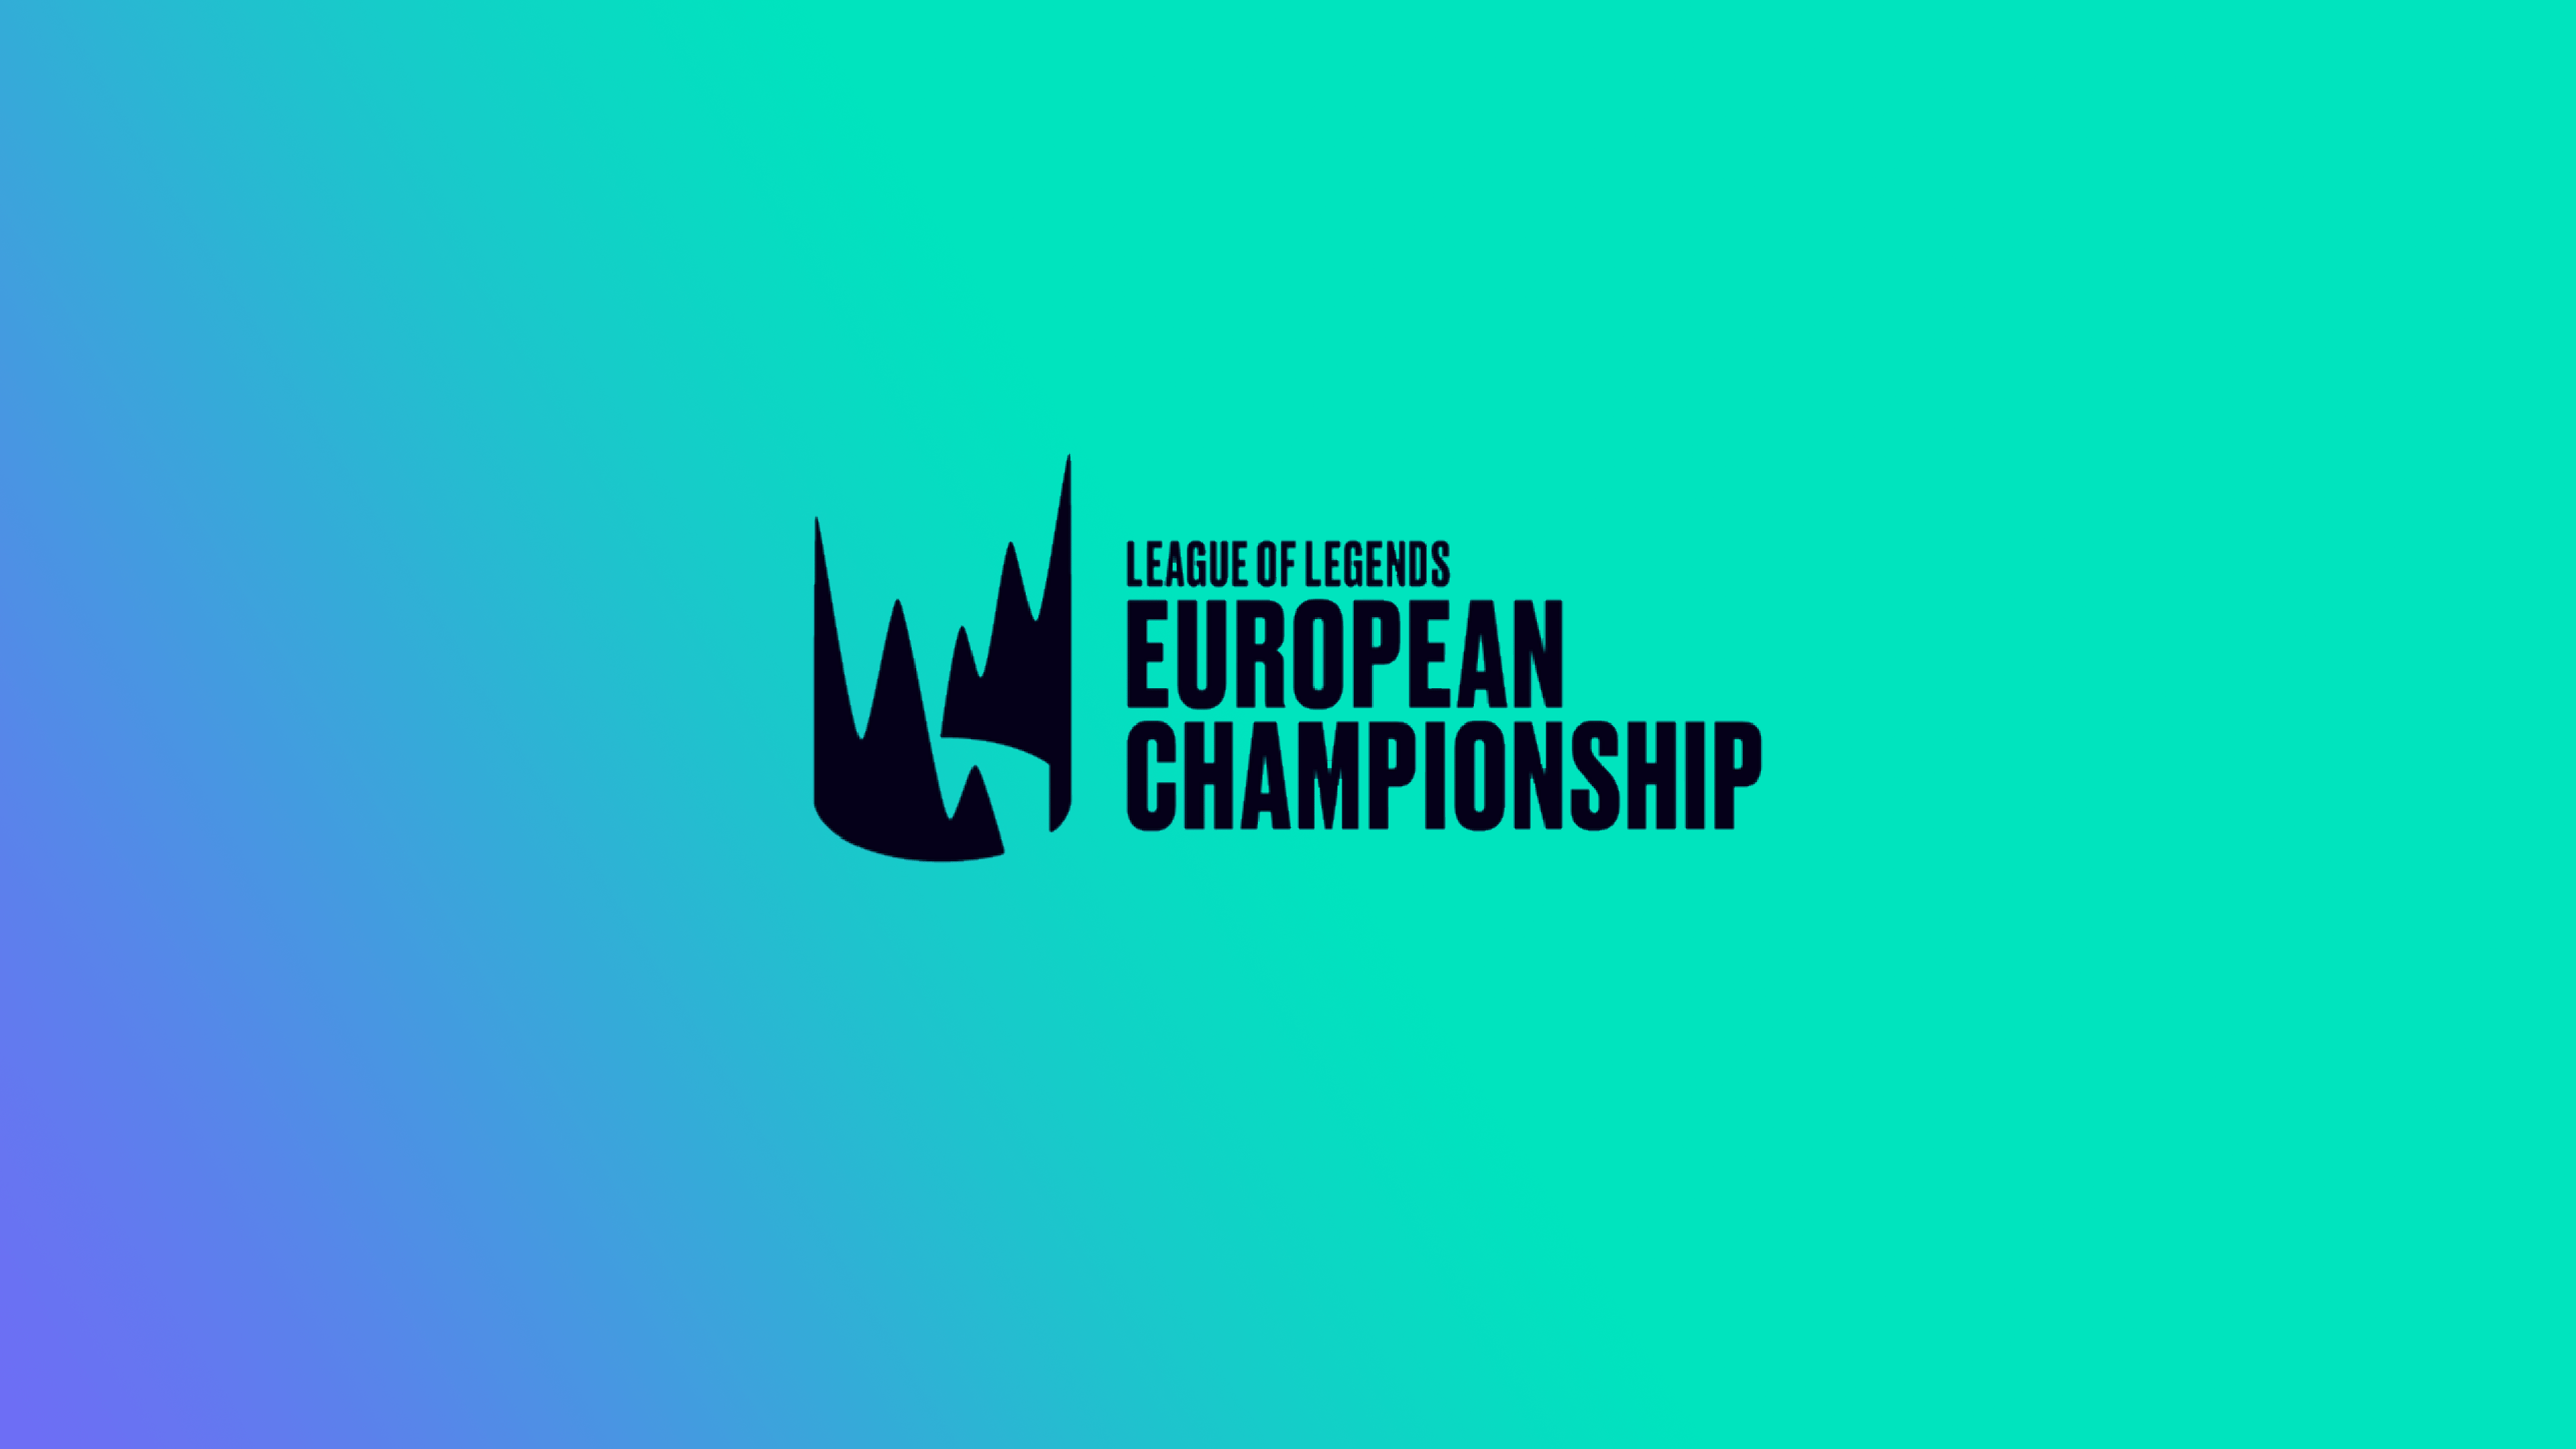 Week 2, Day 2 Overview, And Summary Of League European Championship 2020 By Scairtin